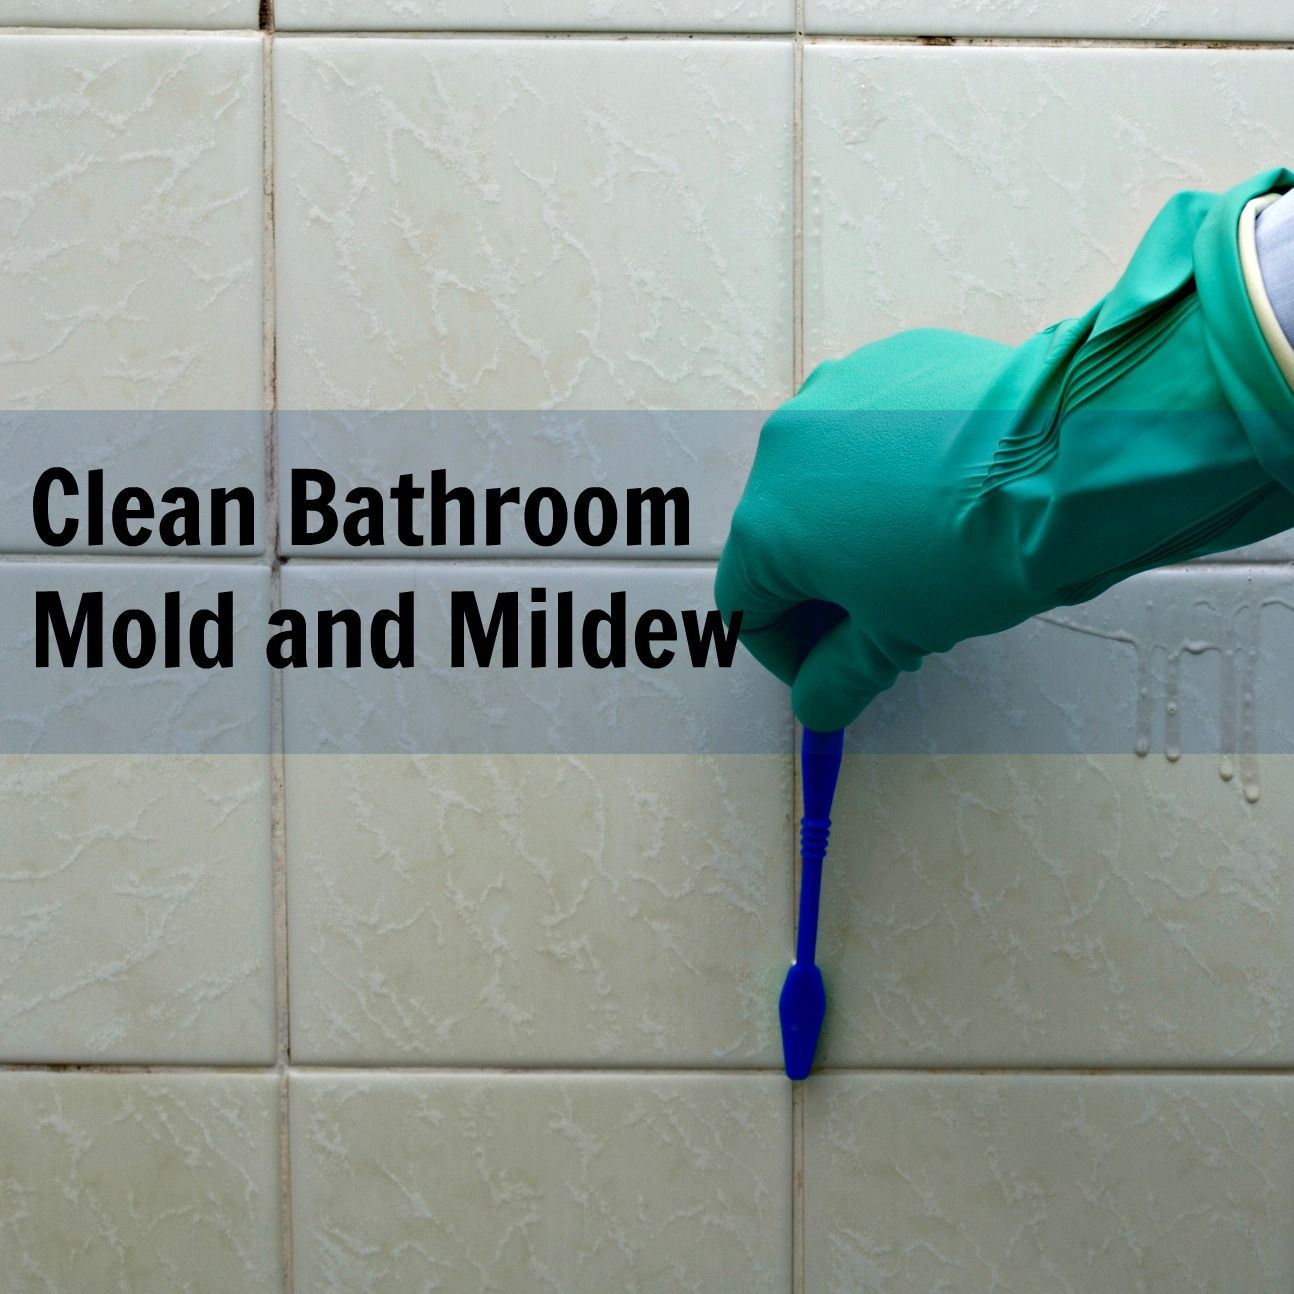 Cleaning tips for removing mold and mildew from shower walls, tile ...